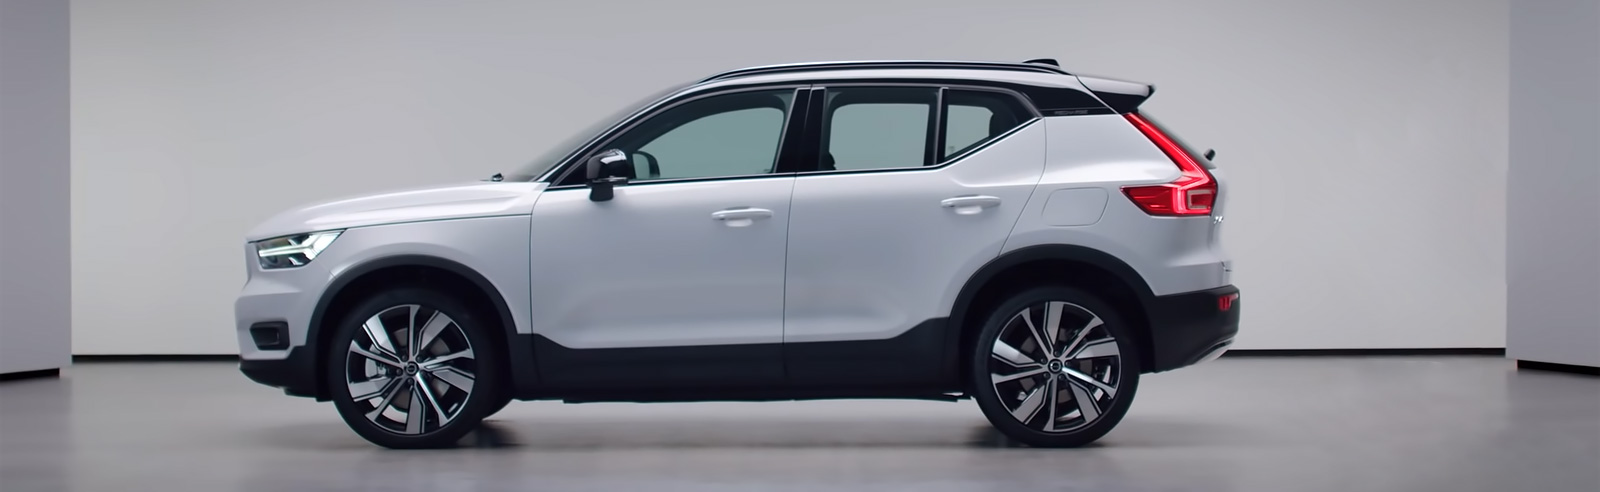 Volvo XC40 Recharge P8 AWD walkaround video